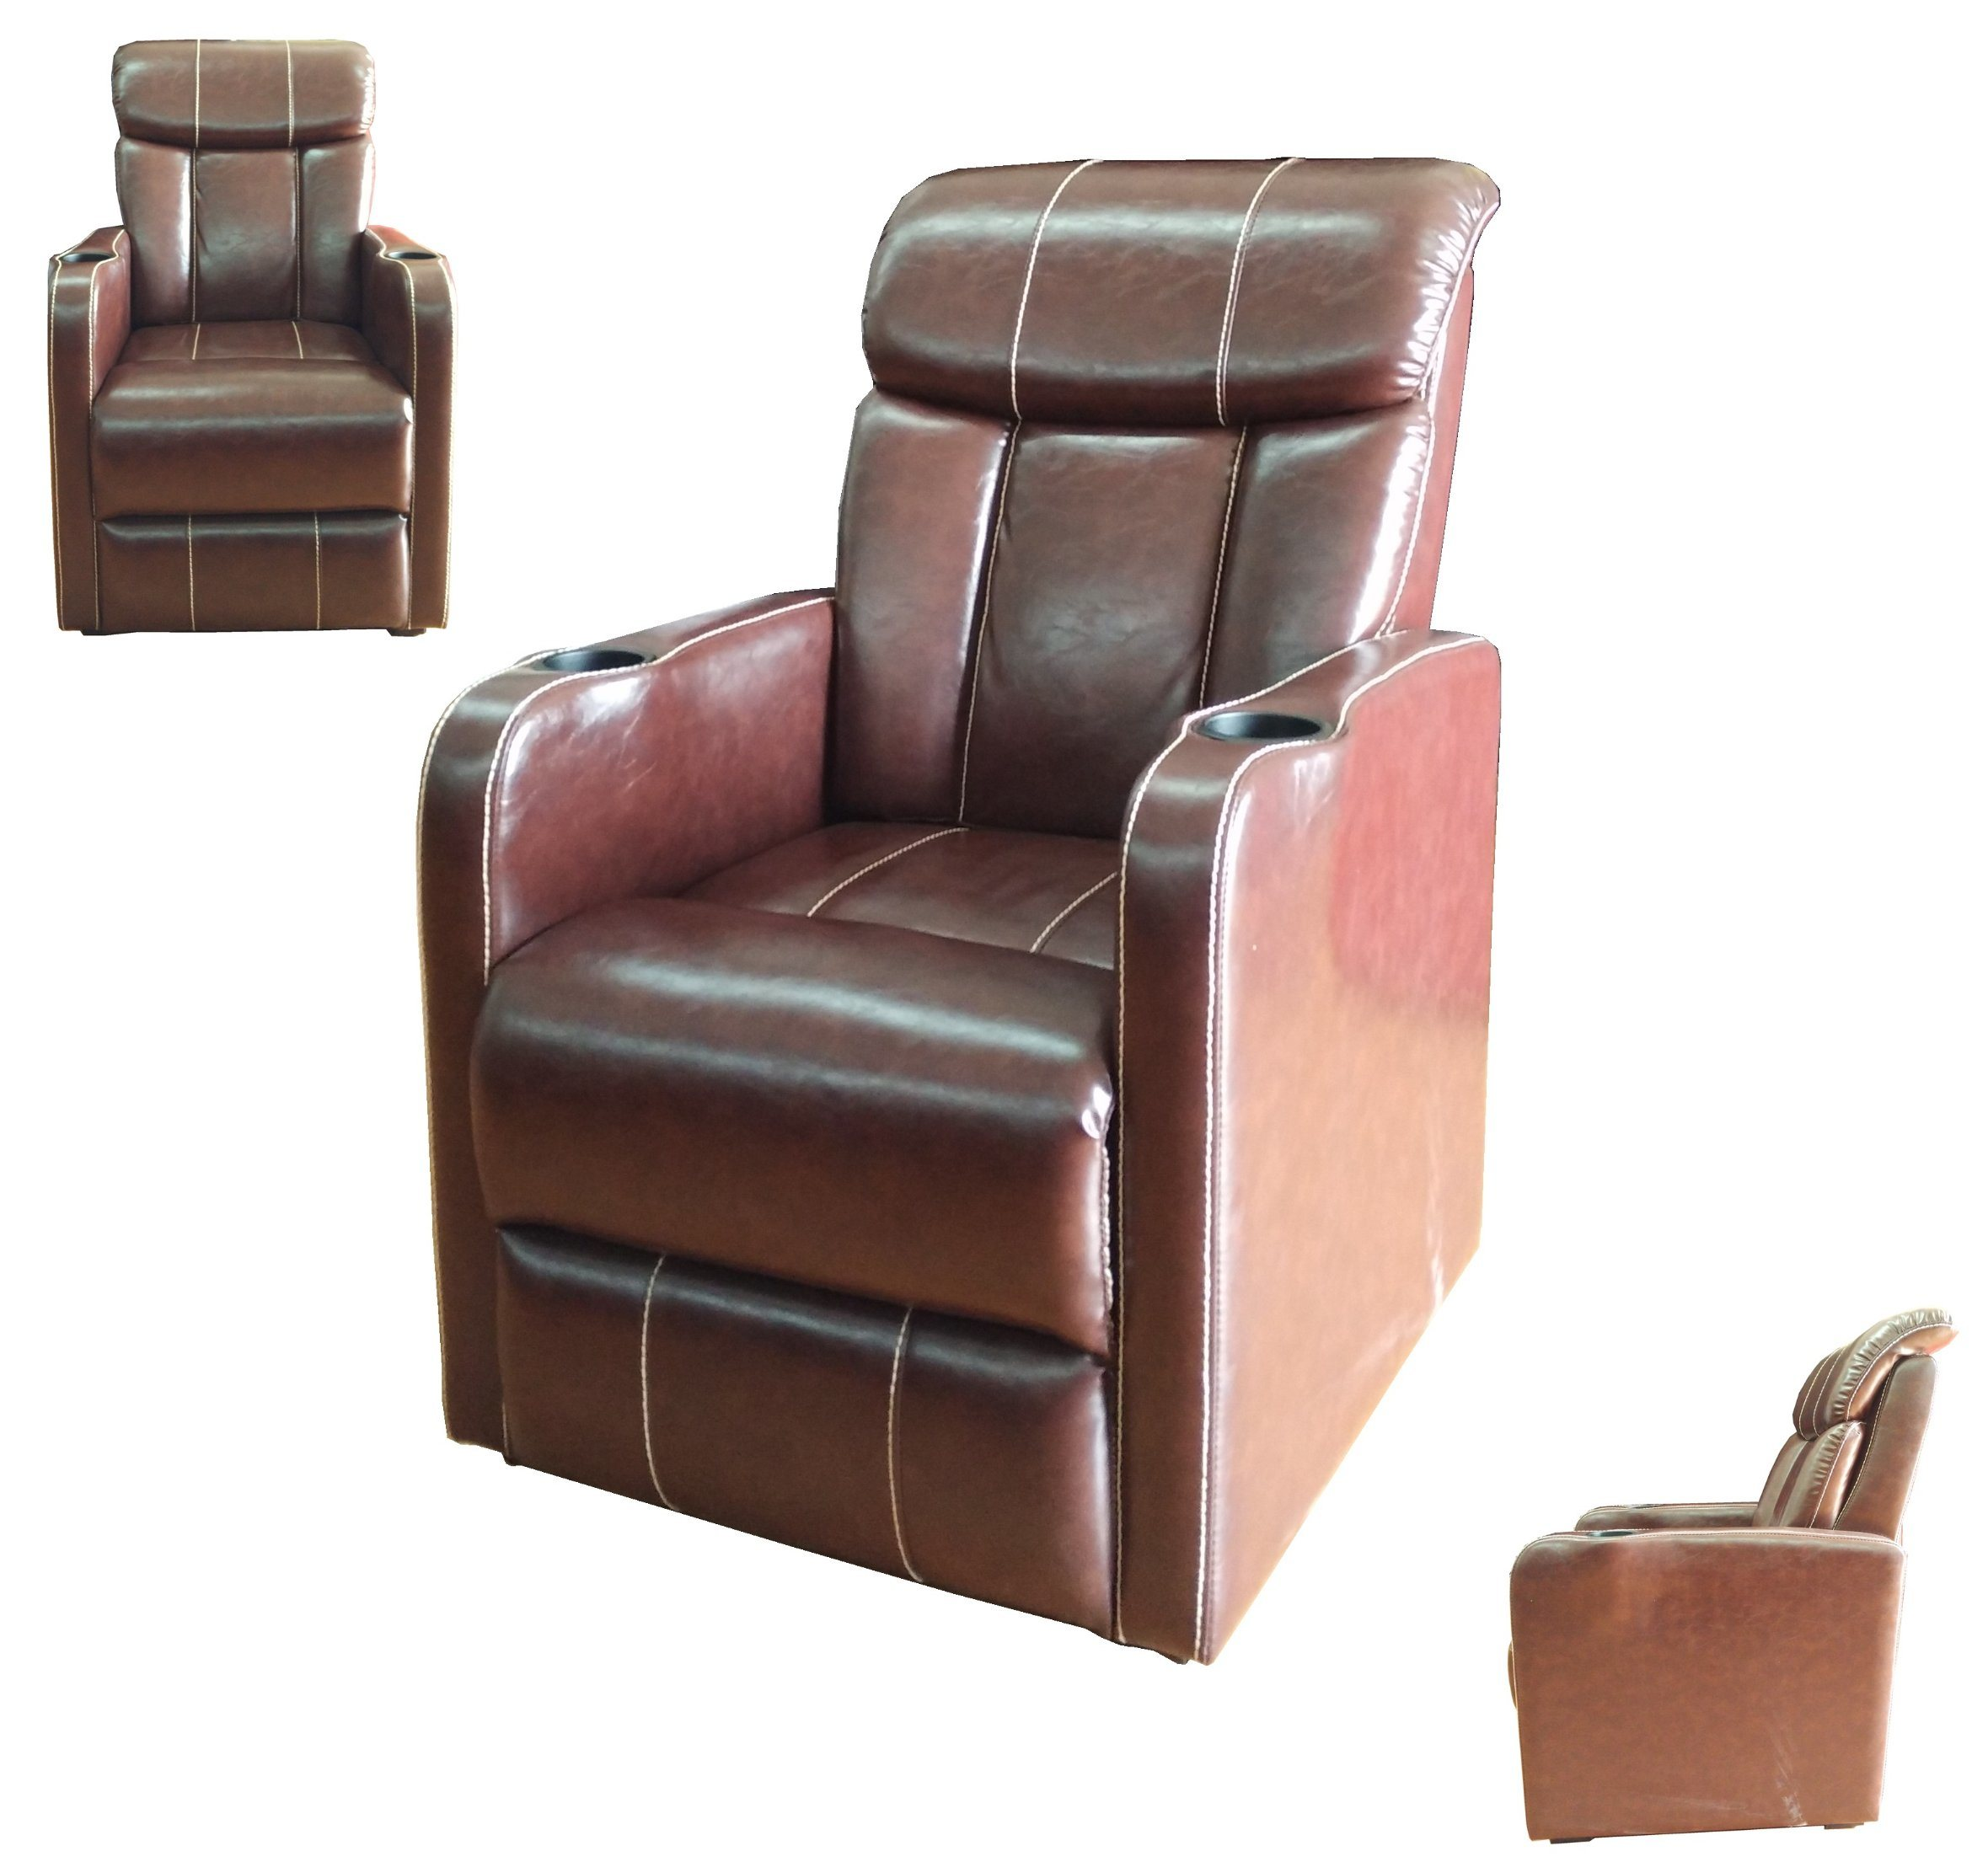 Cinema Chair VIP Theater Sofa Imax Seat (VIM 1)